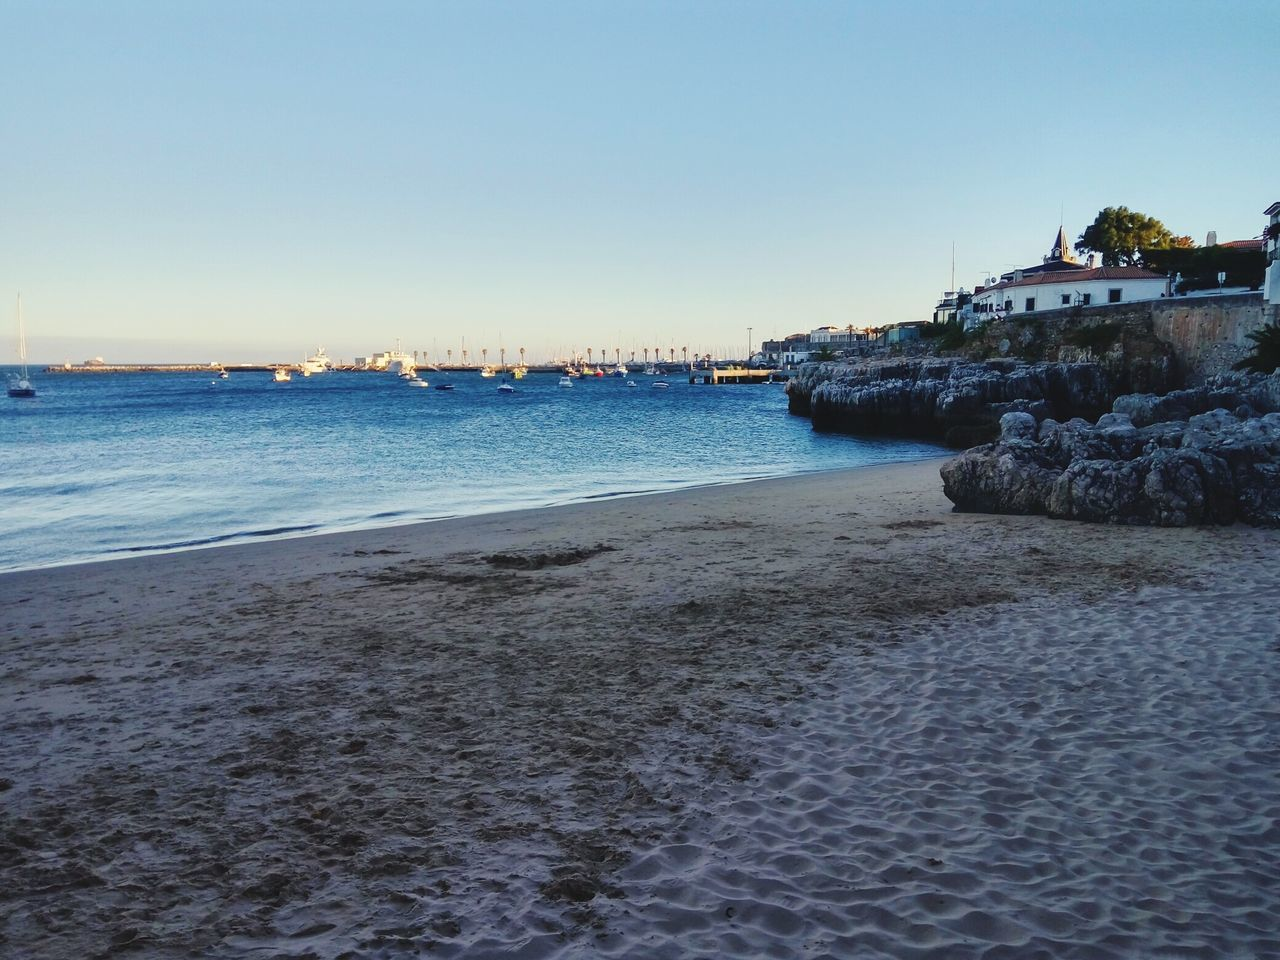 water, sea, beach, nature, sand, beauty in nature, outdoors, tranquility, scenics, no people, architecture, clear sky, tranquil scene, rock - object, sky, building exterior, built structure, travel destinations, sunset, city, day, nautical vessel